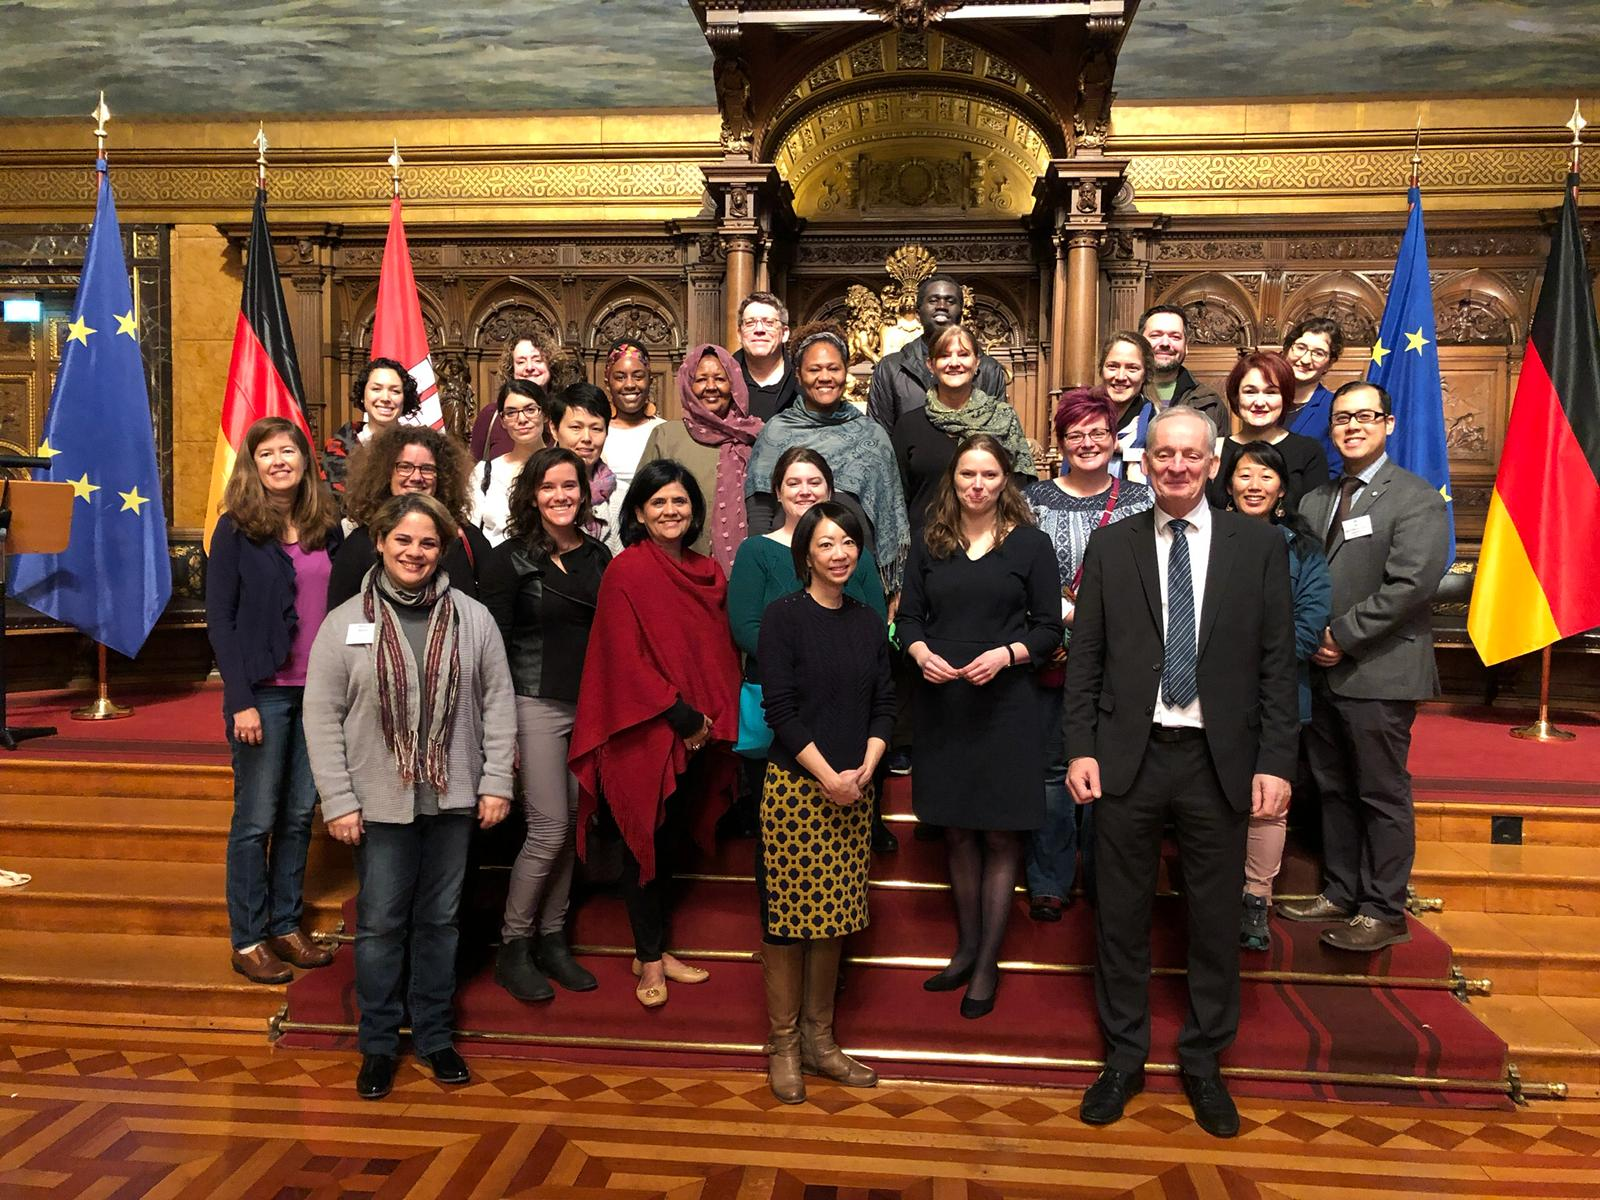 The 2018 WCTE U.S. delegation in Hamburg City Hall